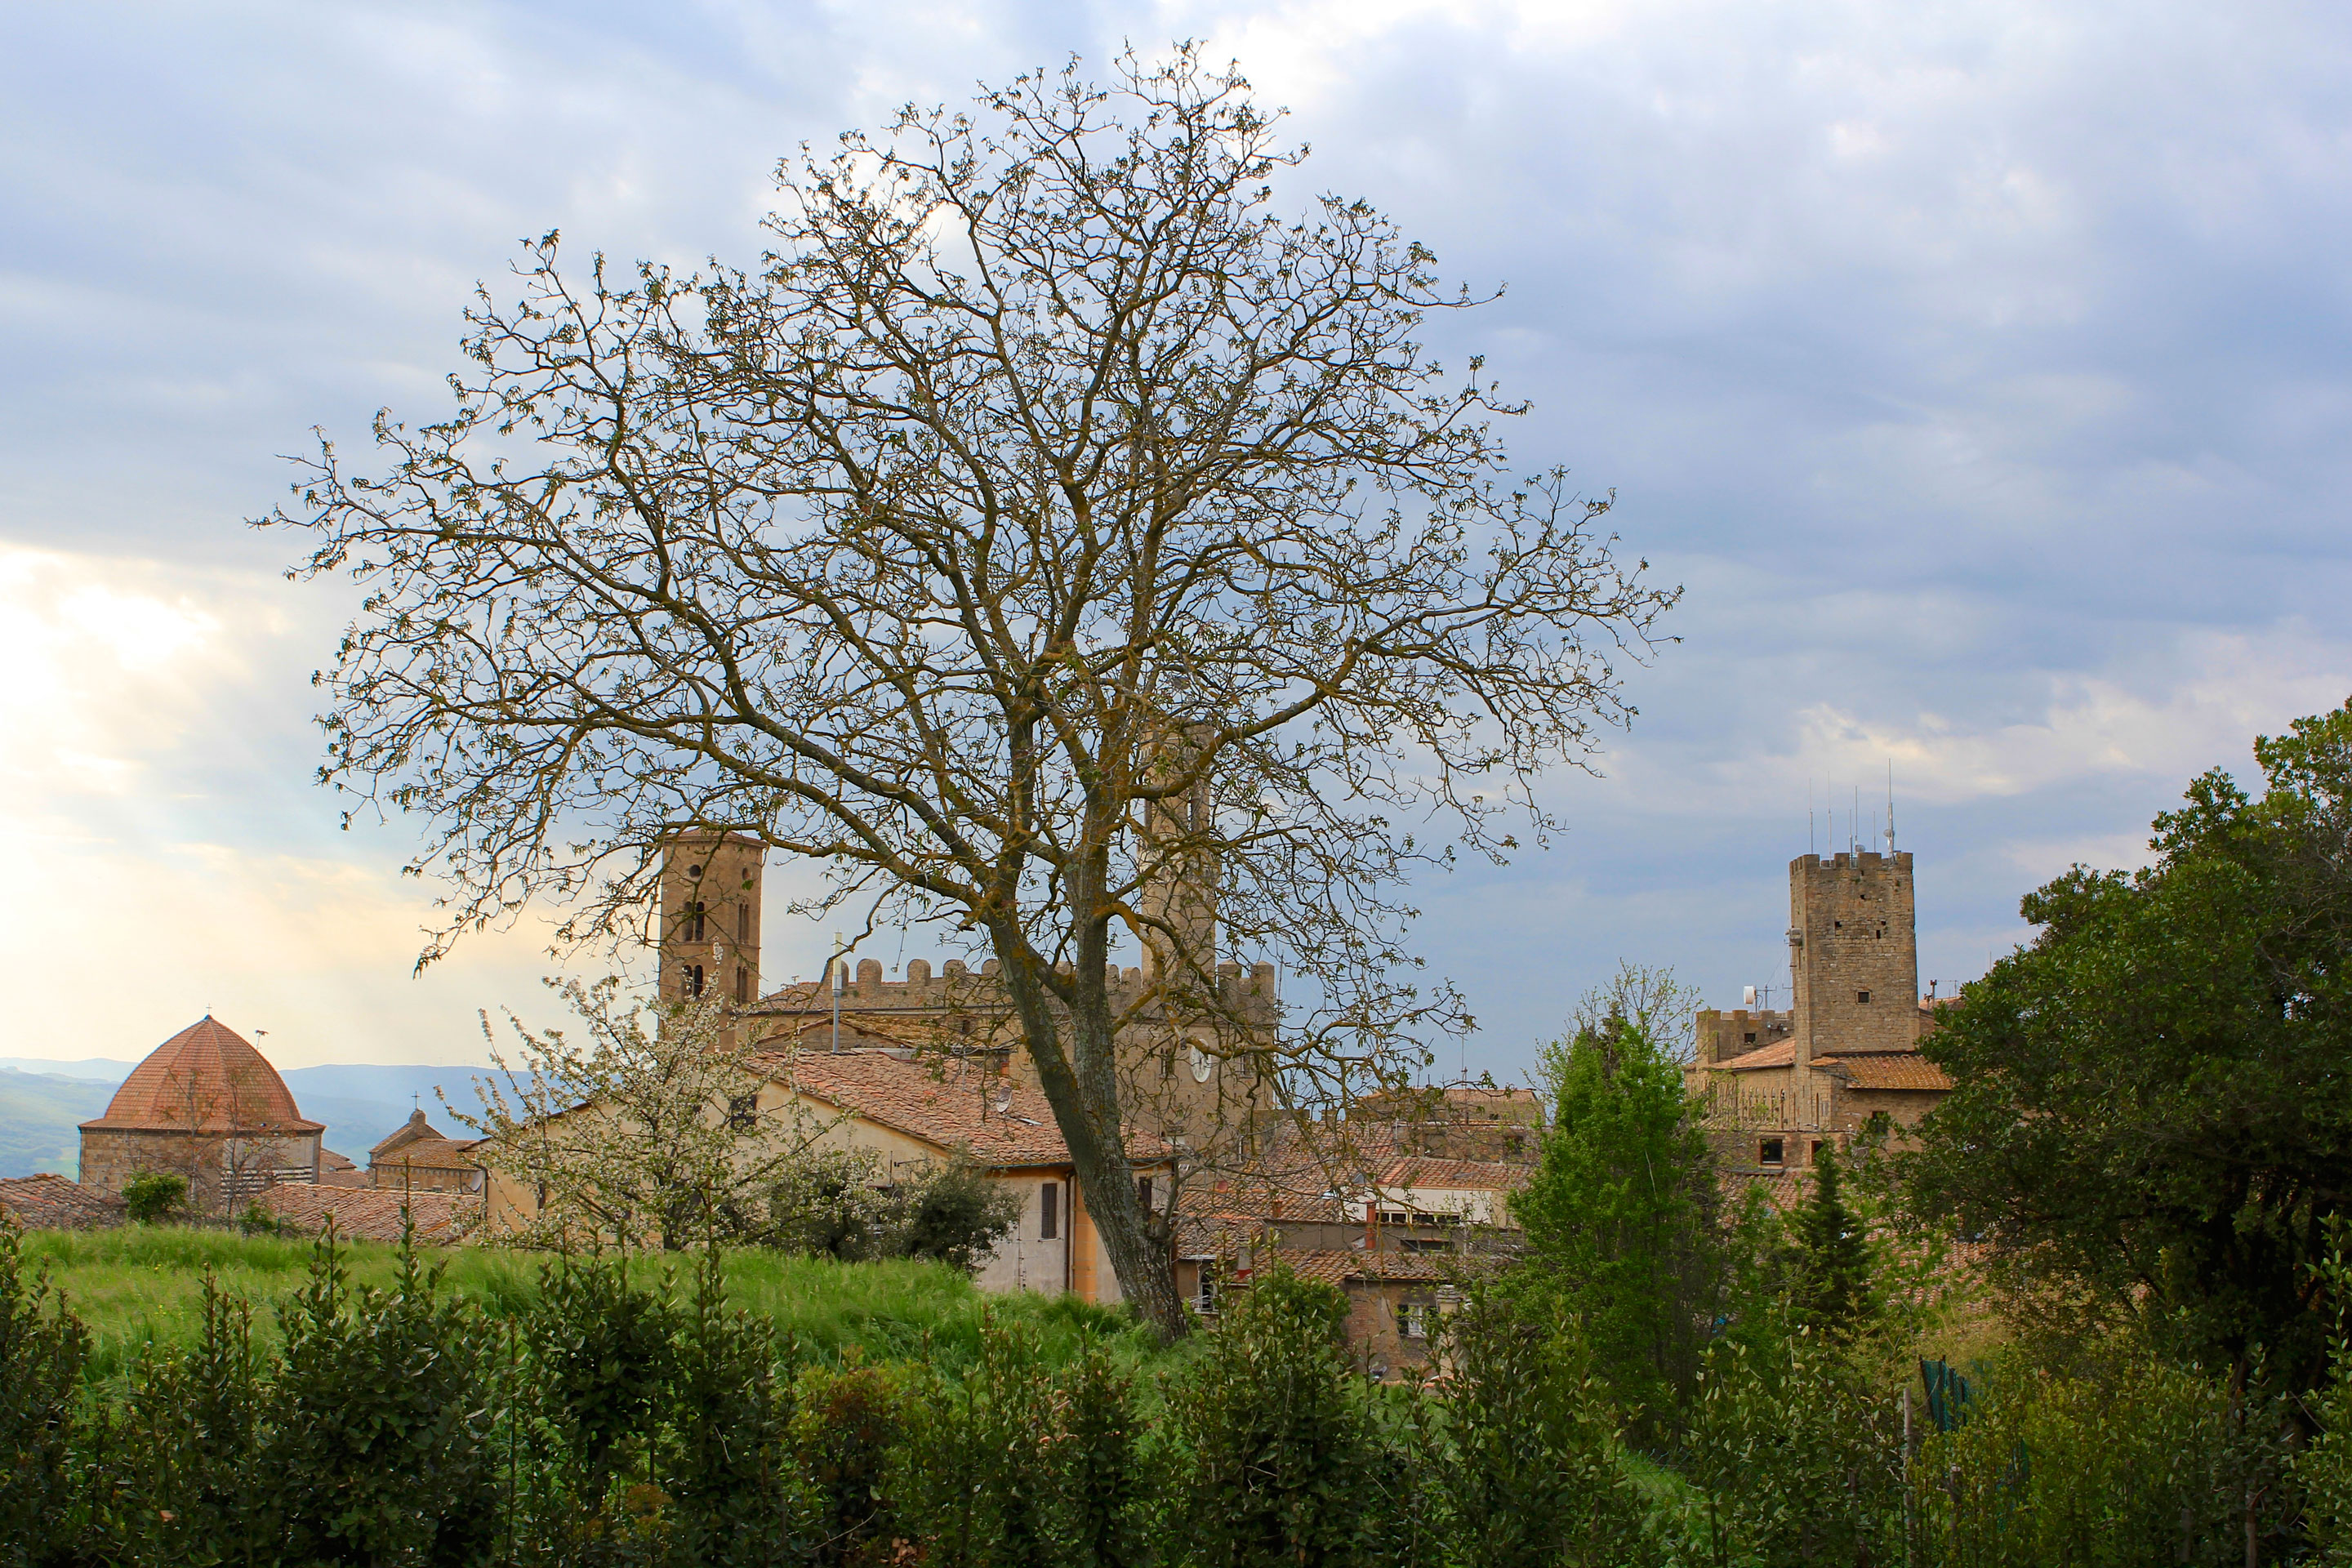 A Single Tree Frames This Scene in Voleterra, Tuscany